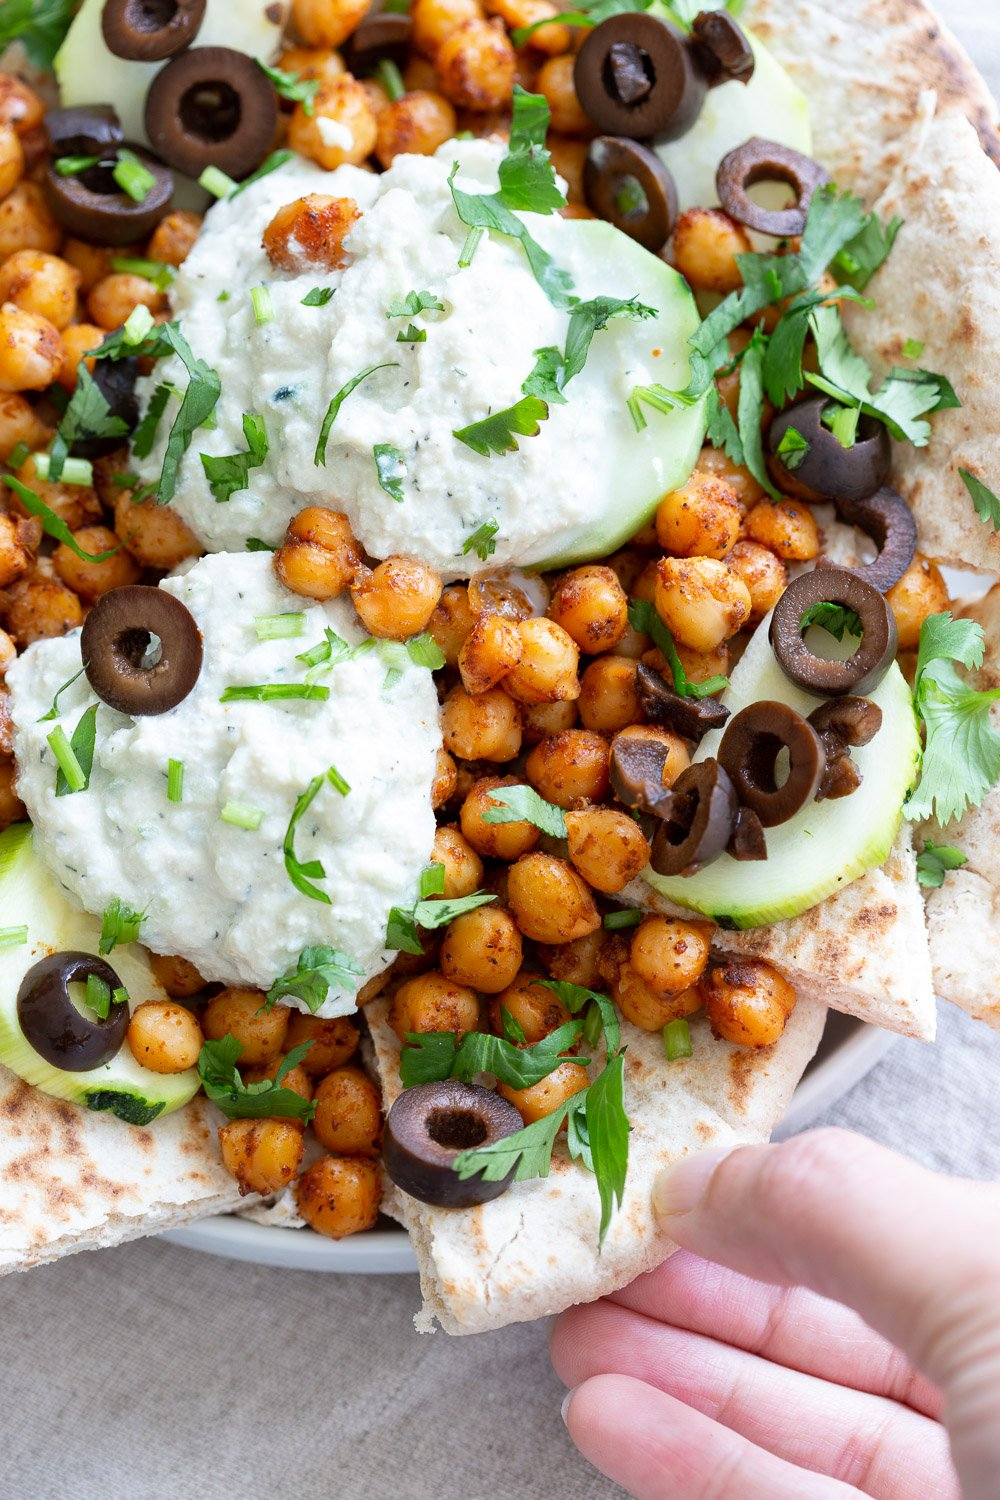 Vegan Mediterranean Nachos with Shawarma Chickpeas, Tzatziki, Olives, Cucumber, warm toasted Pita bread. Great Appetizer for parties or potluck. #Vegan #nutfree #recipe #Veganricha #Mediterraneannachos